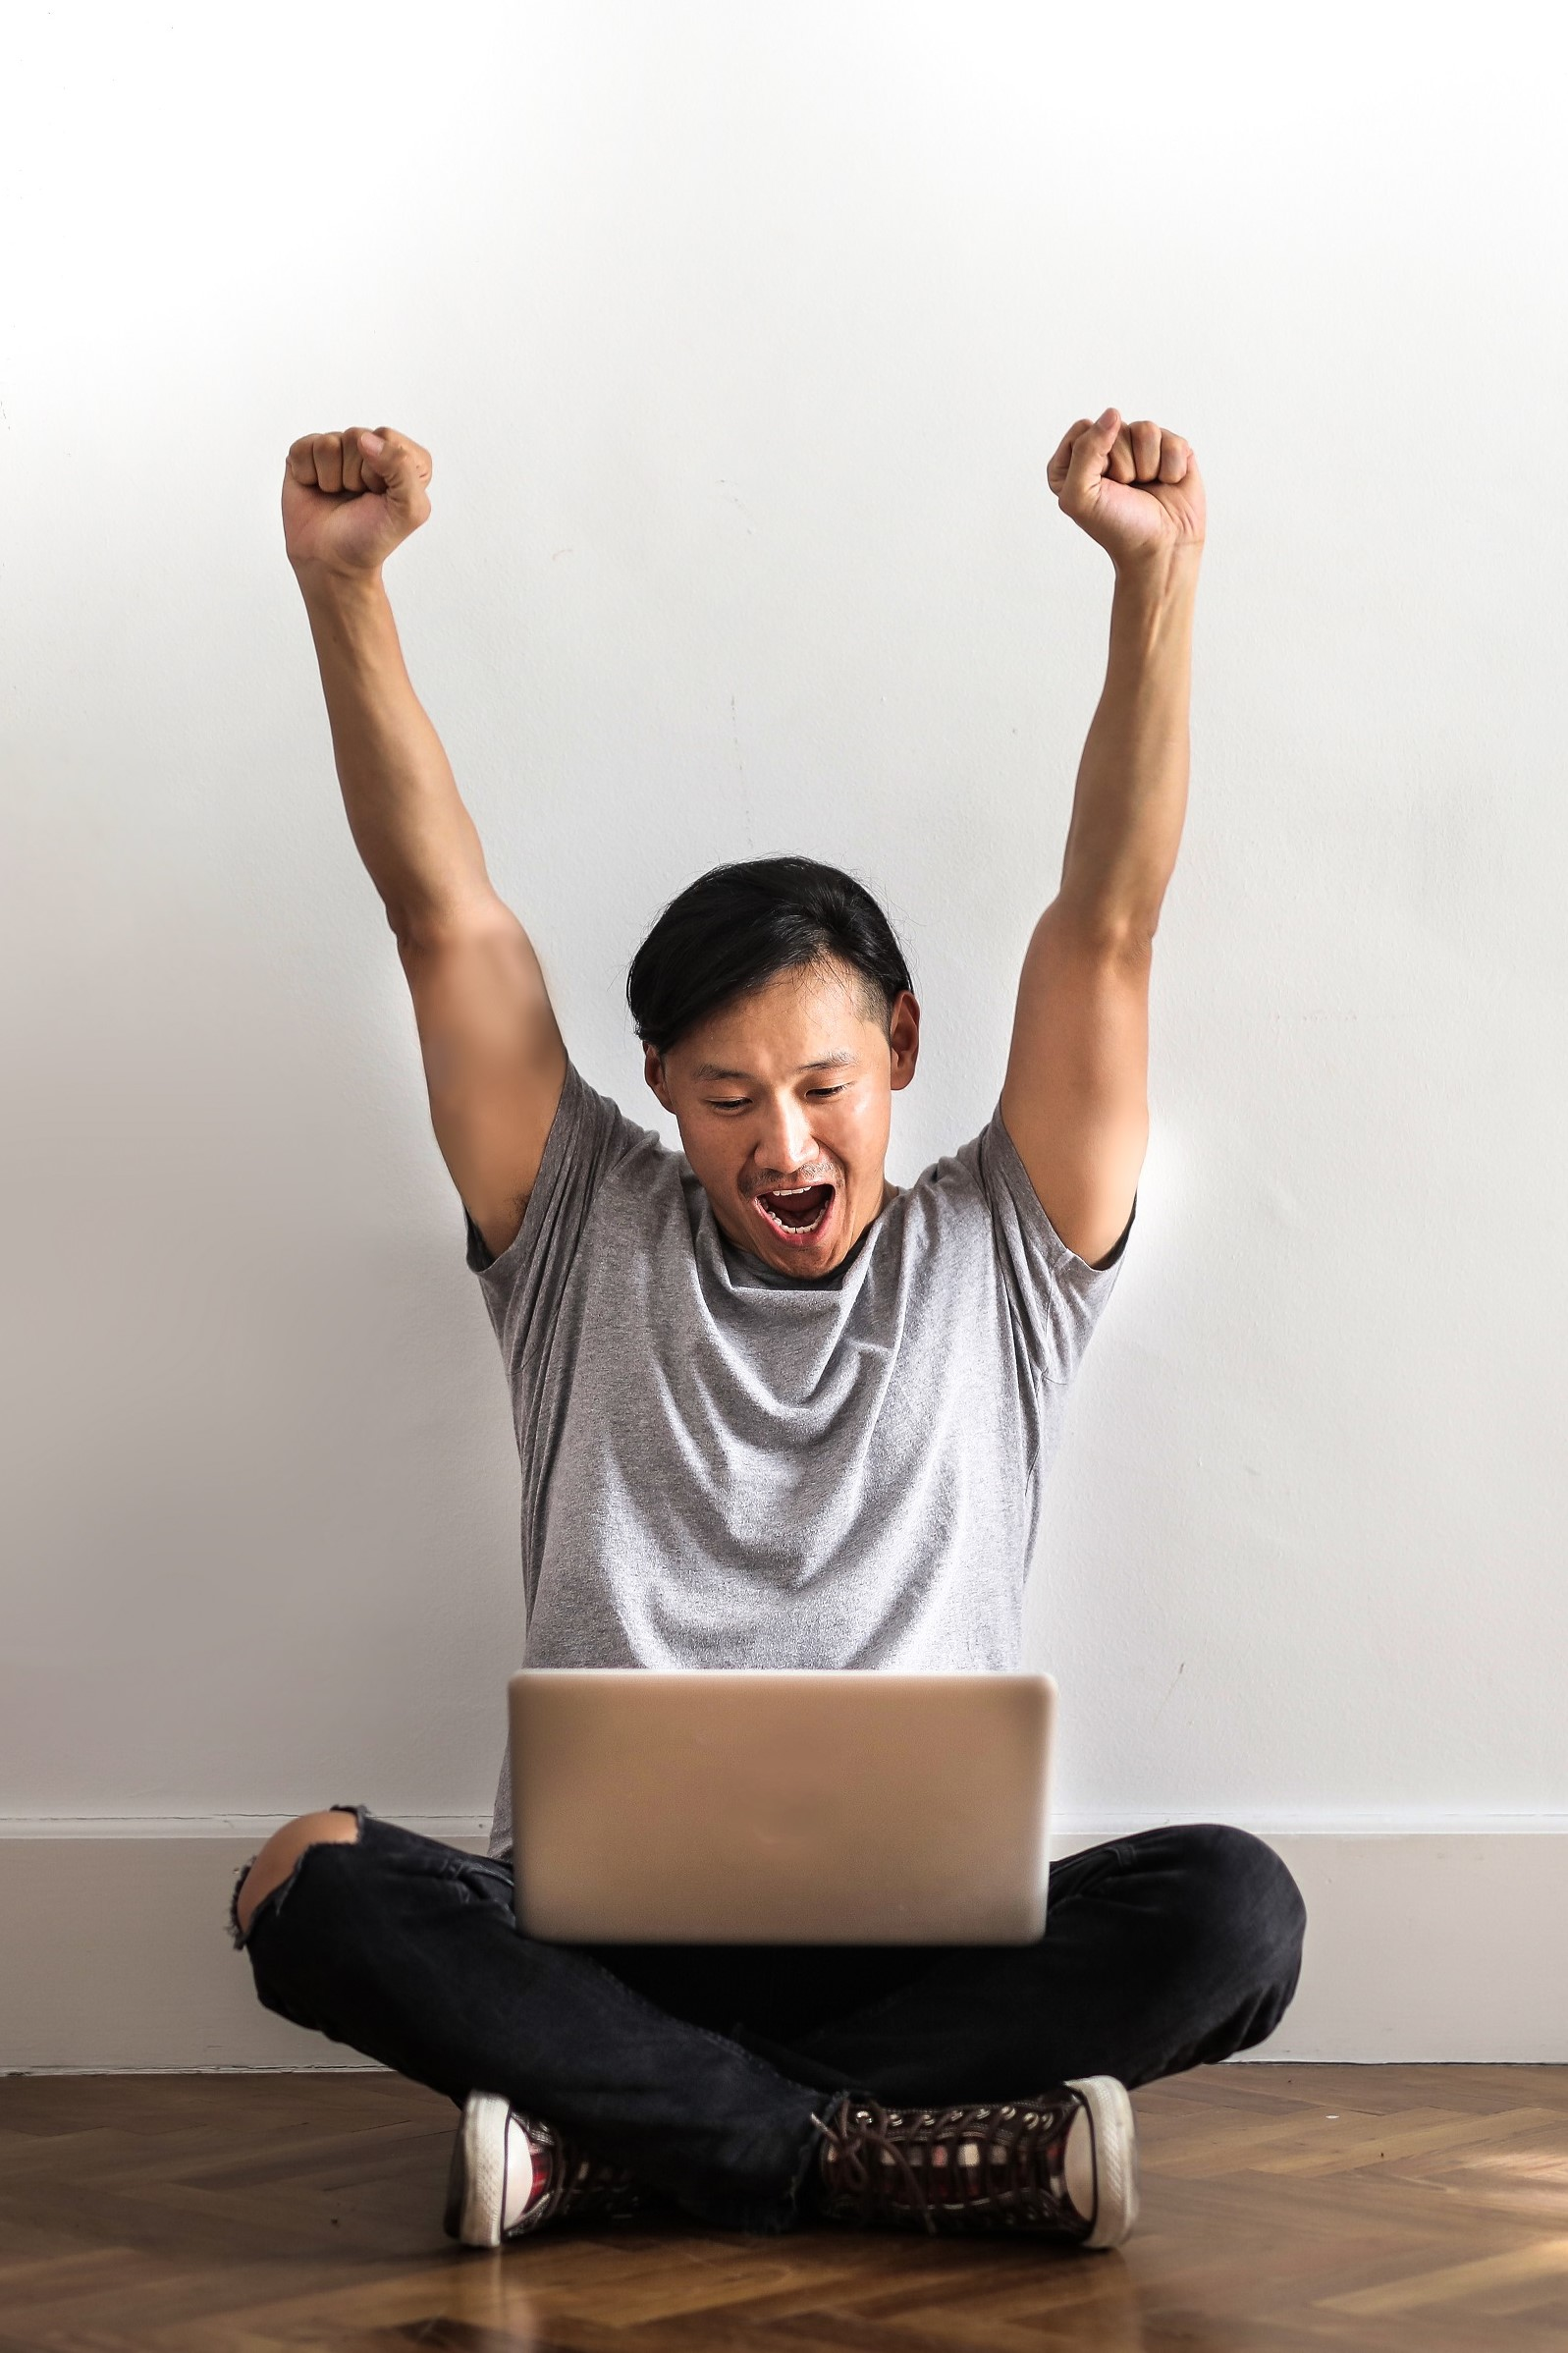 a man in gray t-shirt and black pants sitting on the floor and holding a laptop cheering as he achieved something